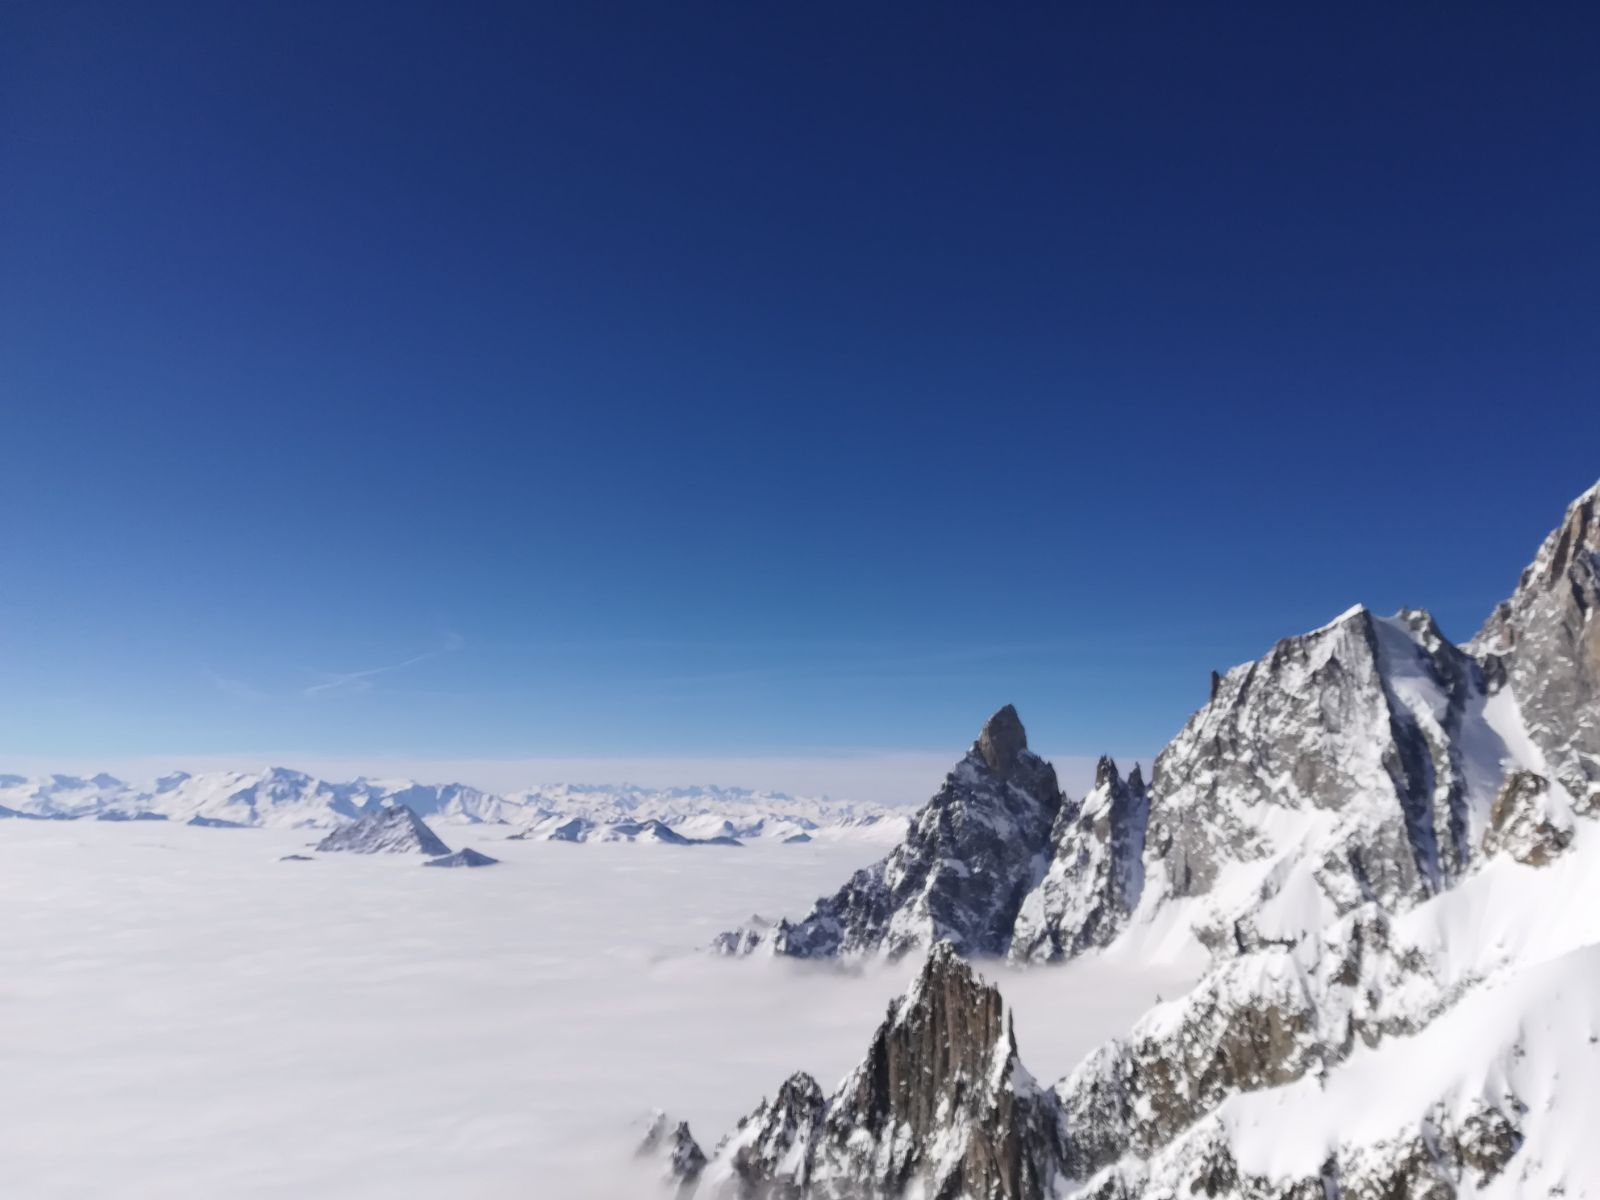 vallee blanche guide alpine proup (1)